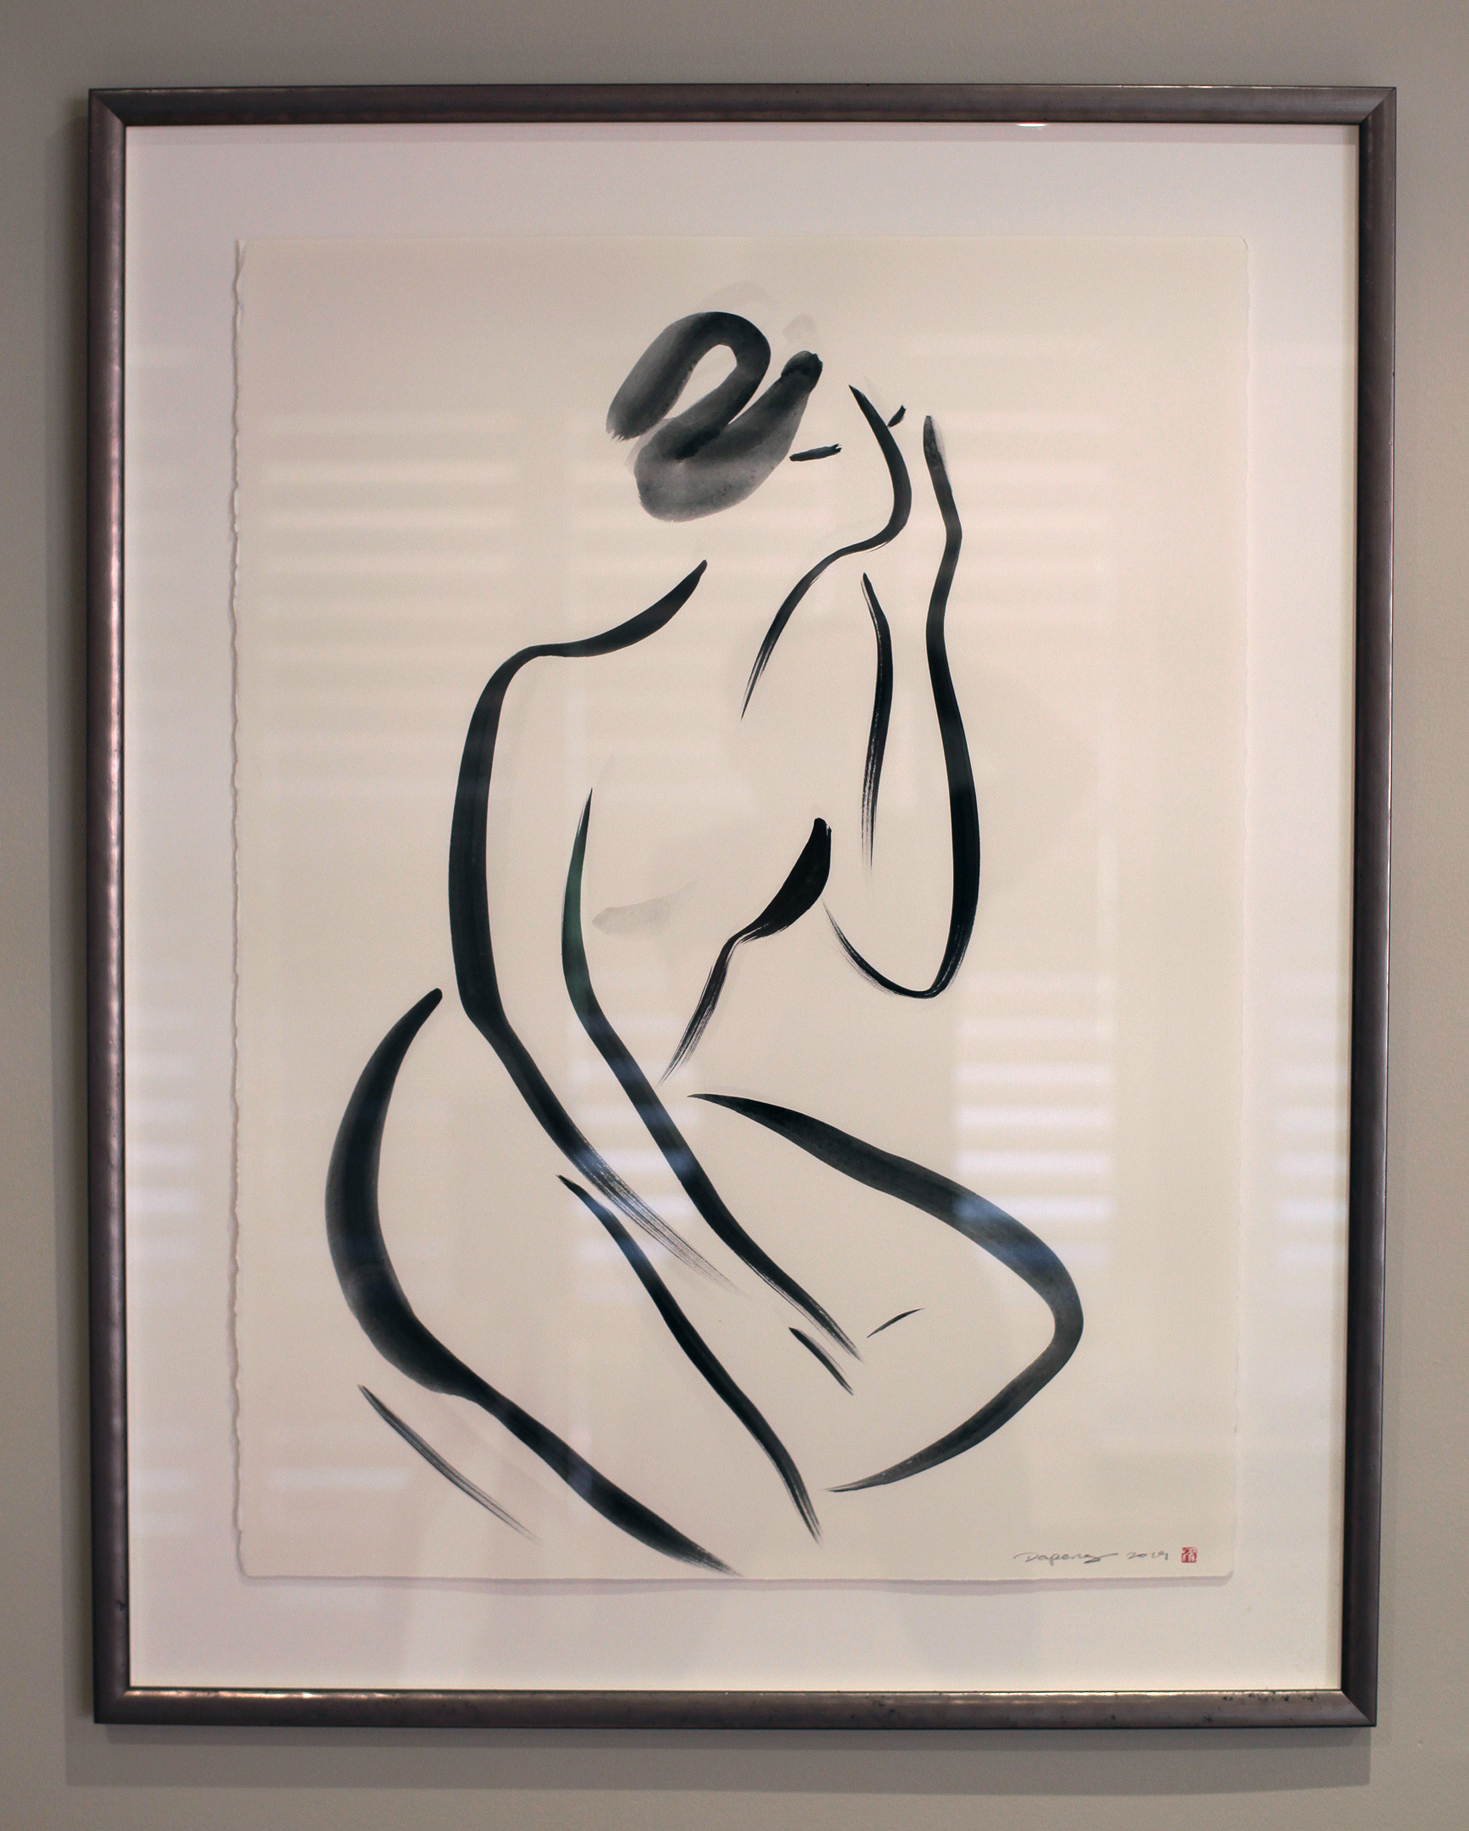 Untitled Nude Series, Gouache on Paper, 56x76cm, 2019